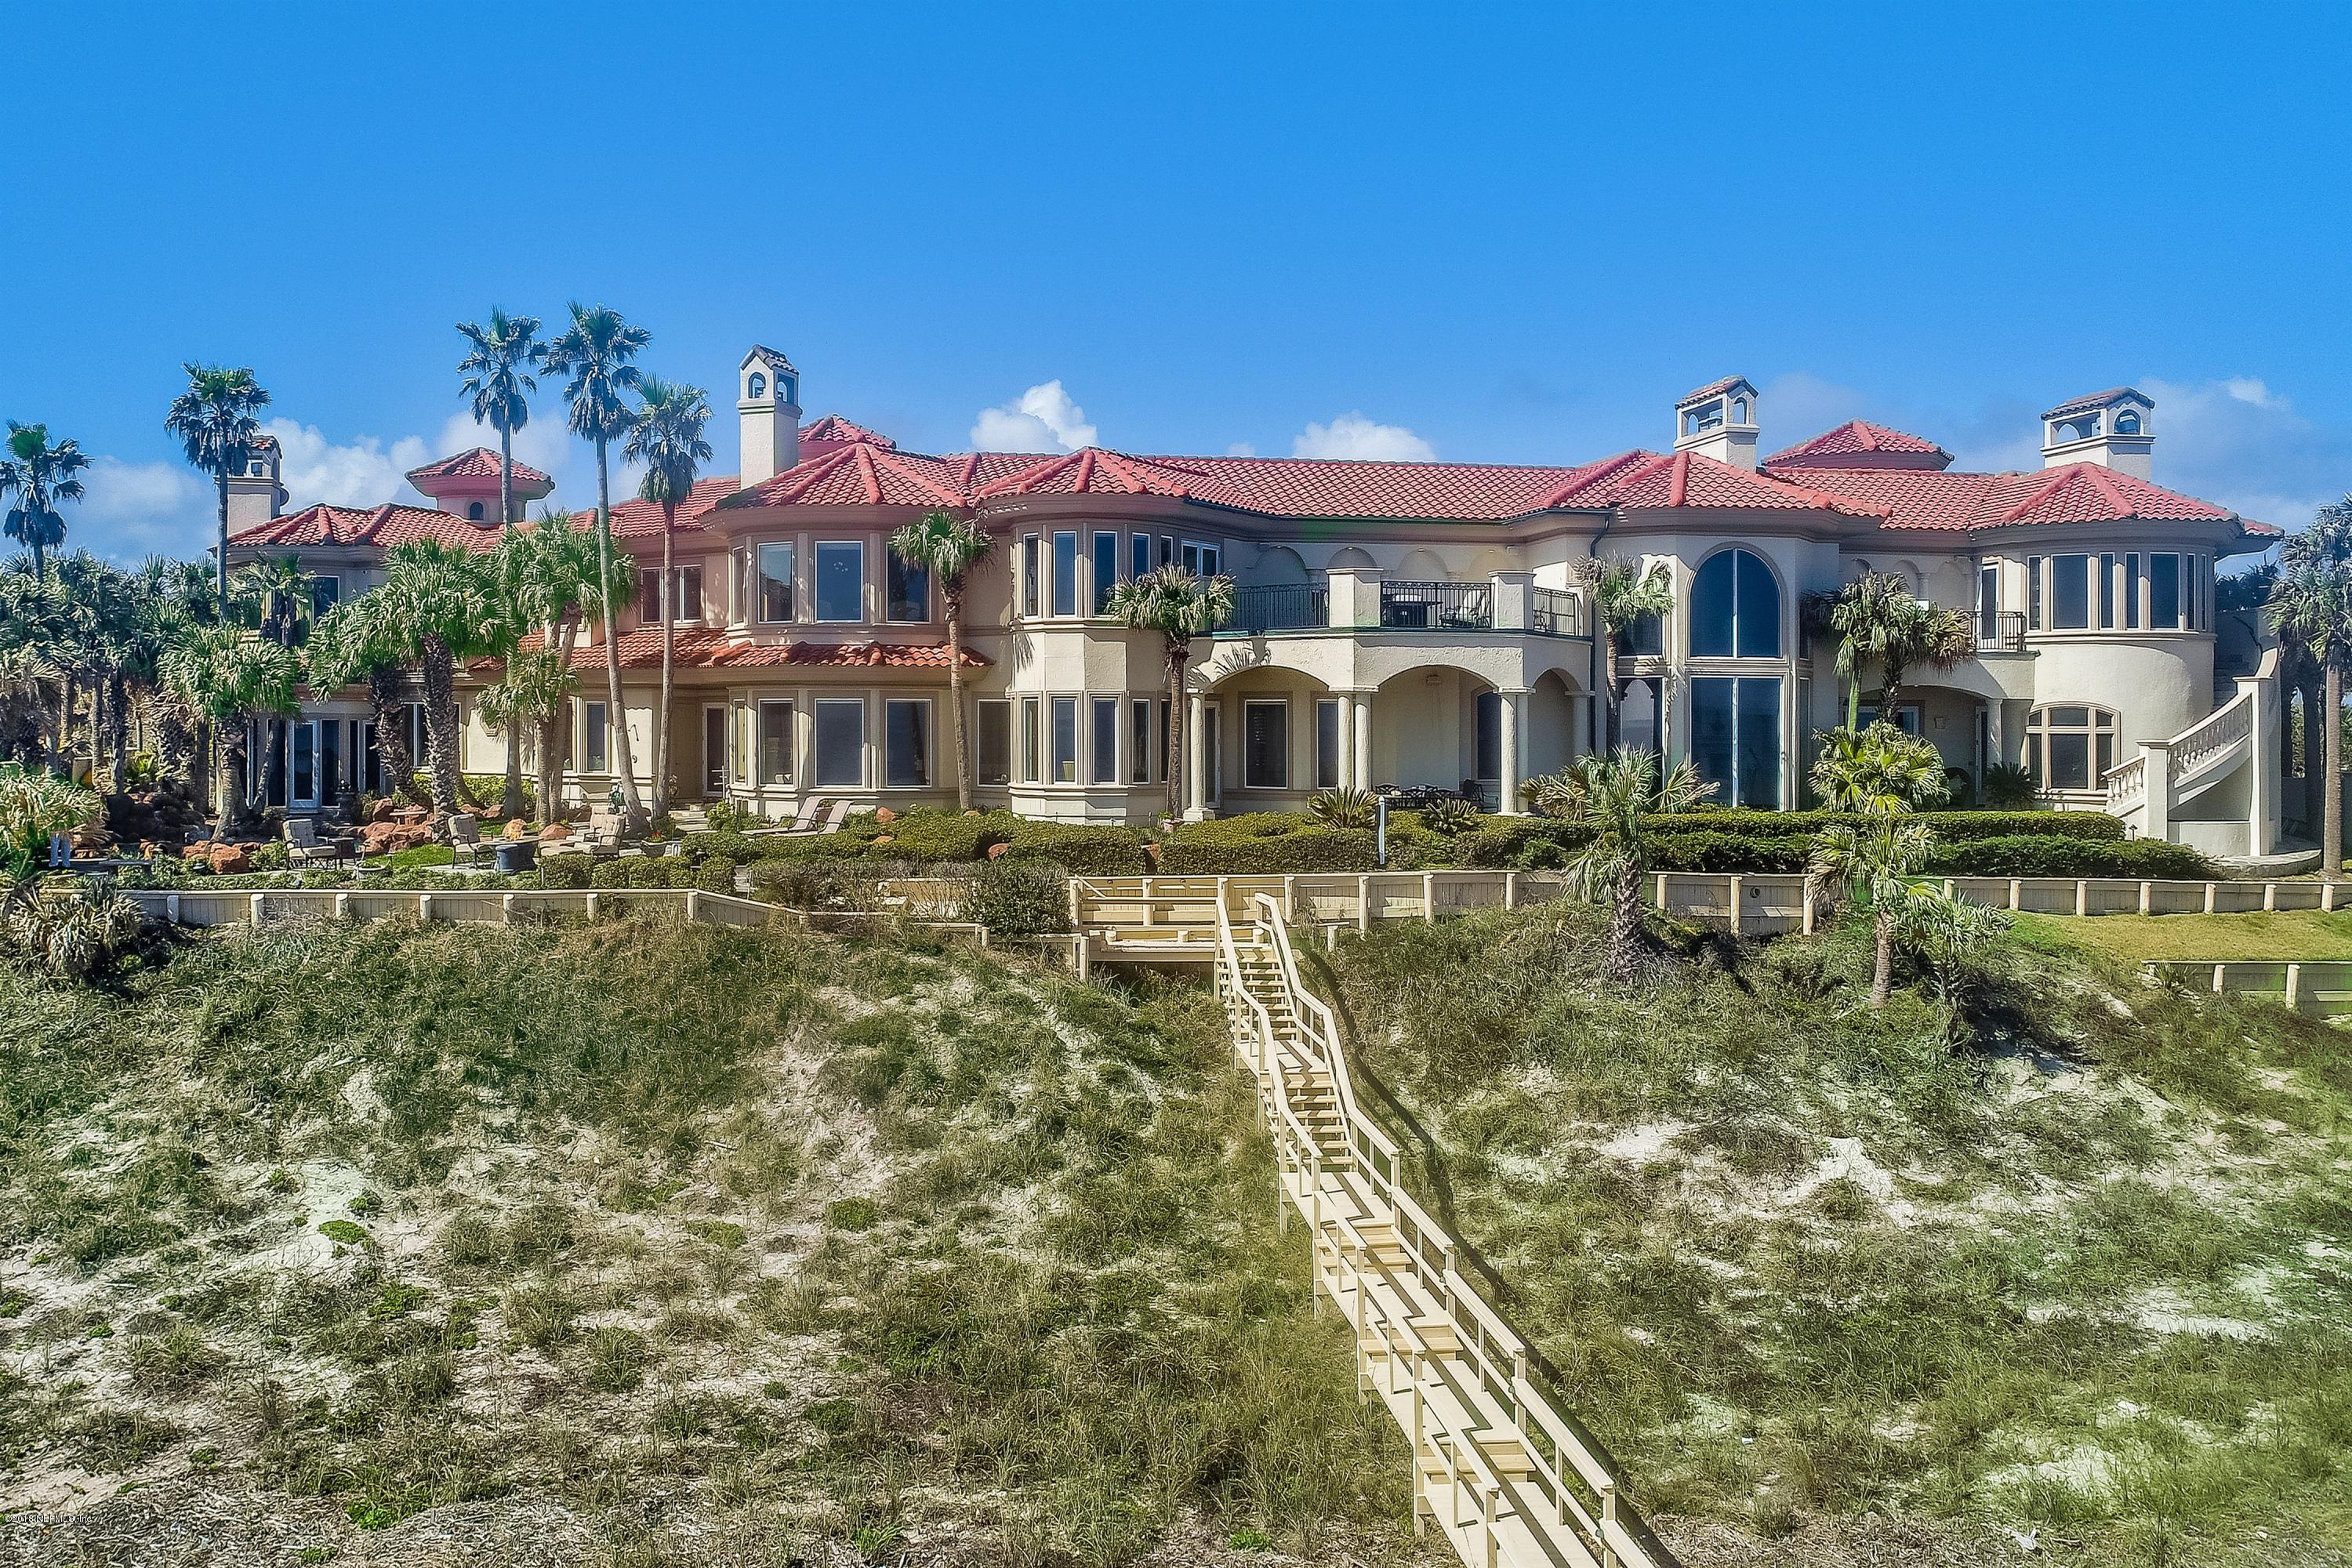 1263 PONTE VEDRA, PONTE VEDRA BEACH, FLORIDA 32082, 8 Bedrooms Bedrooms, ,8 BathroomsBathrooms,Residential - single family,For sale,PONTE VEDRA,921858